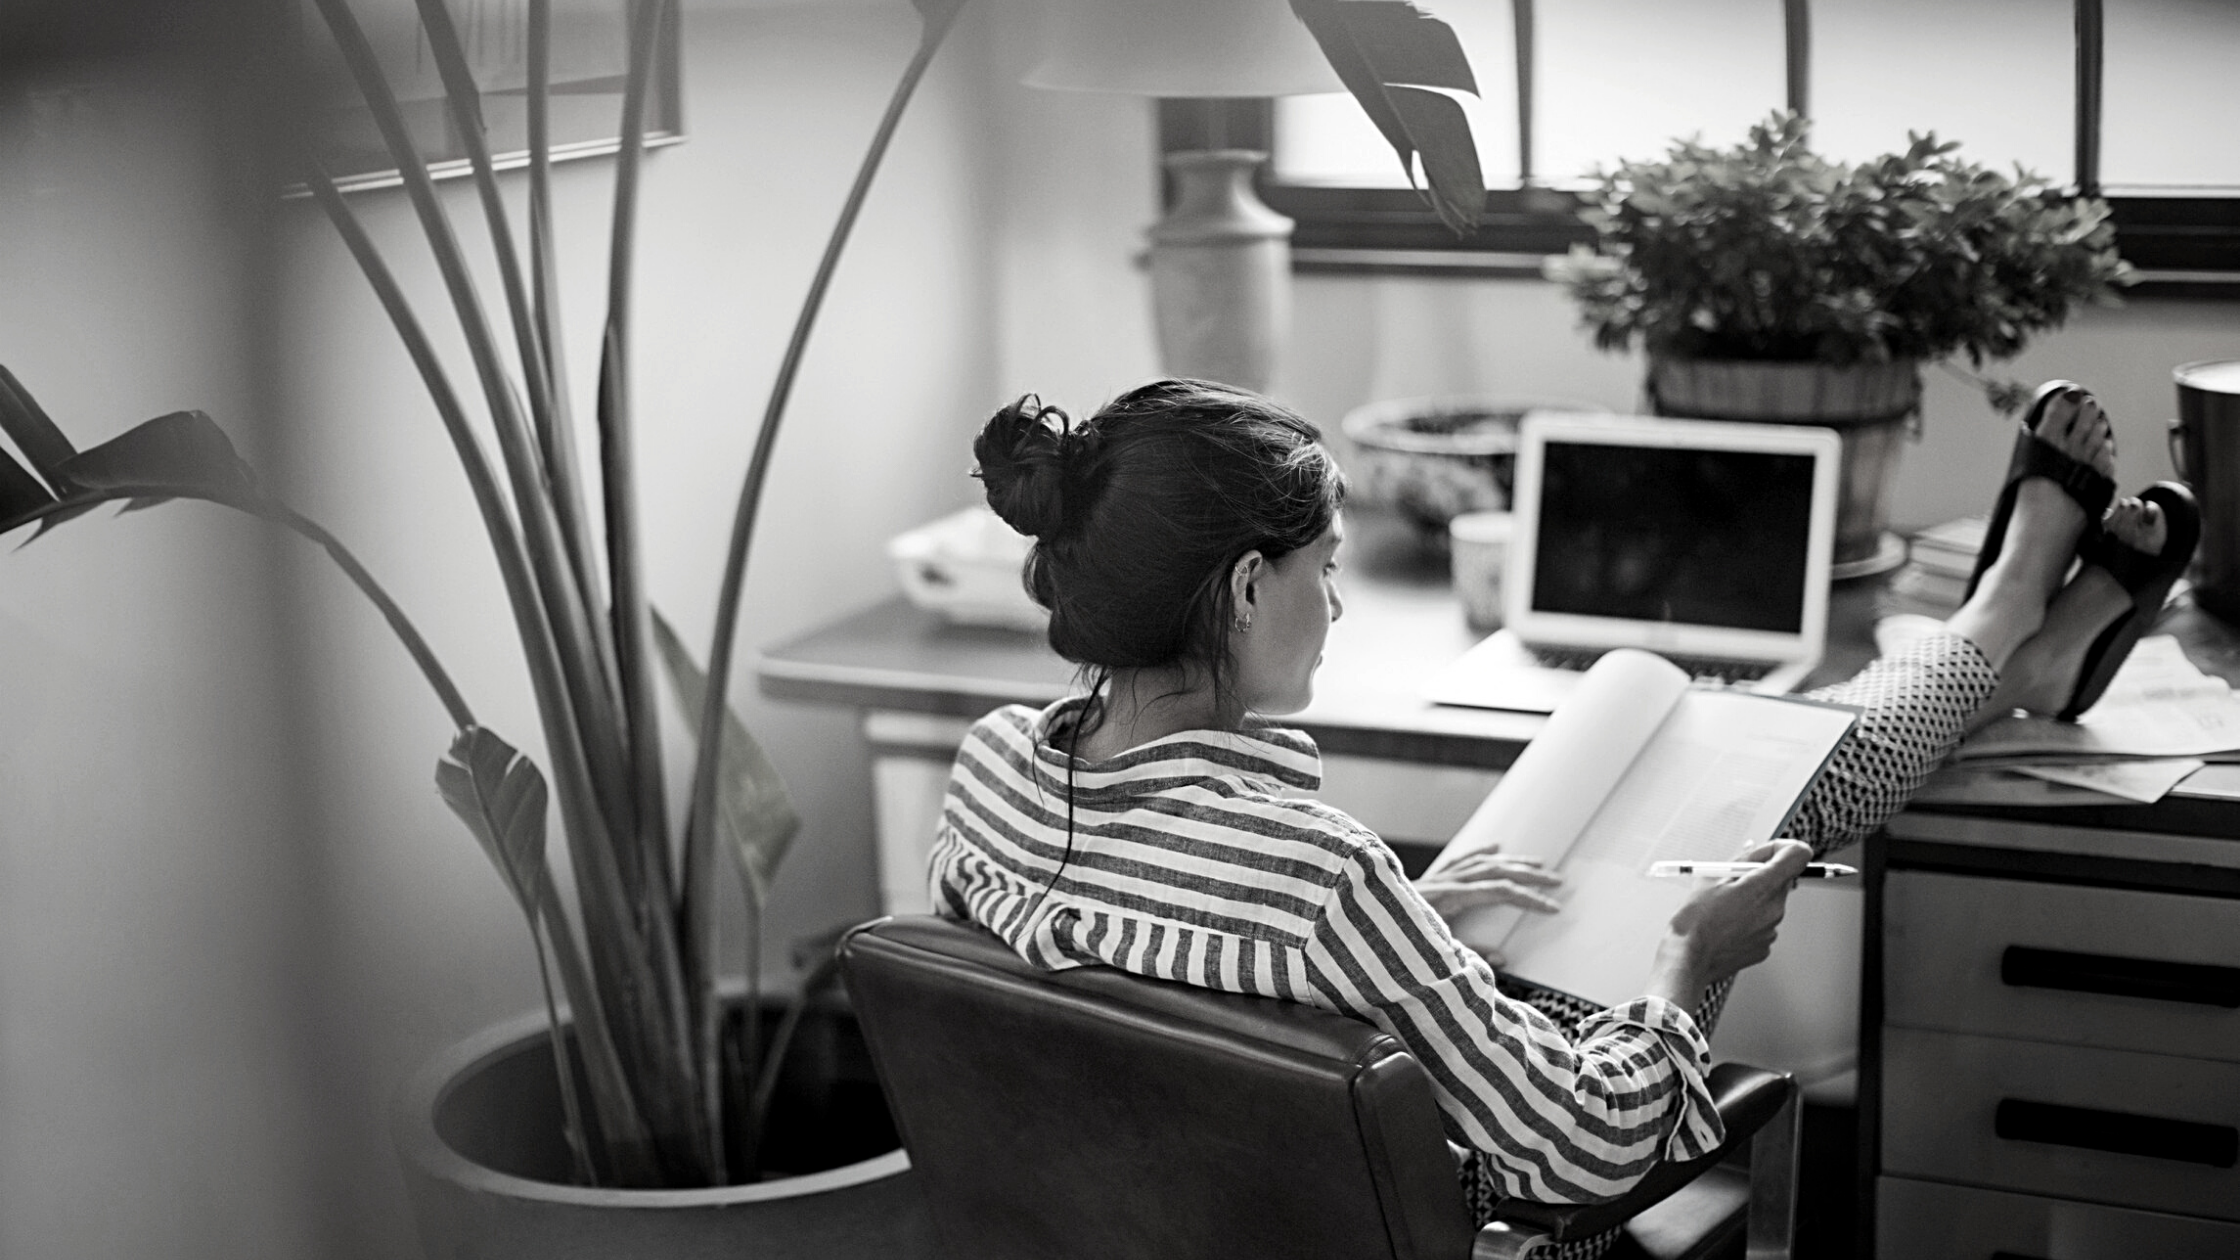 woman sitting at desk with papers in lap and feet on desk